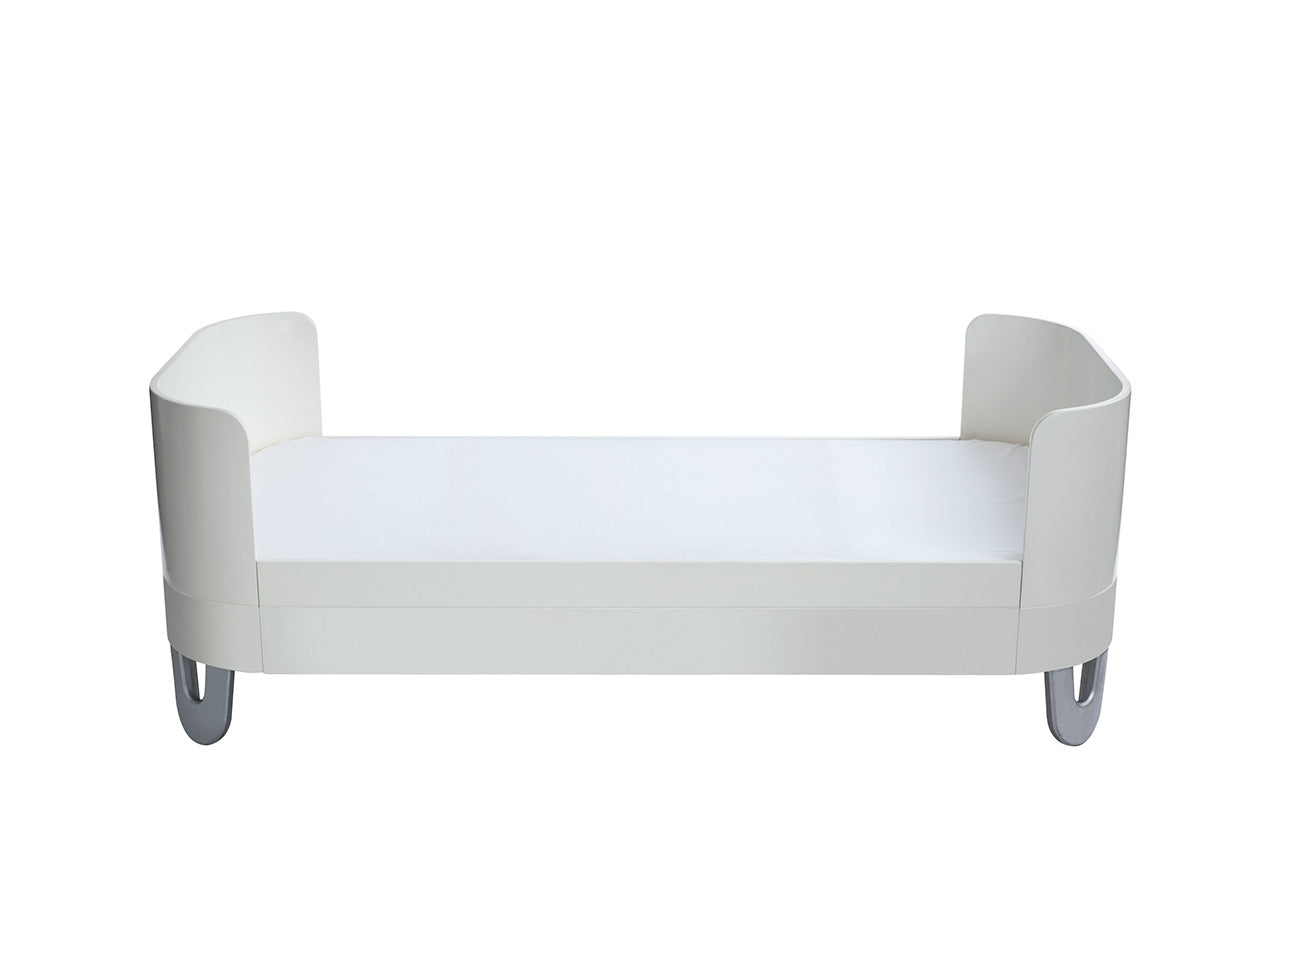 Serena Junior Bed Extension (Pre-order Now)